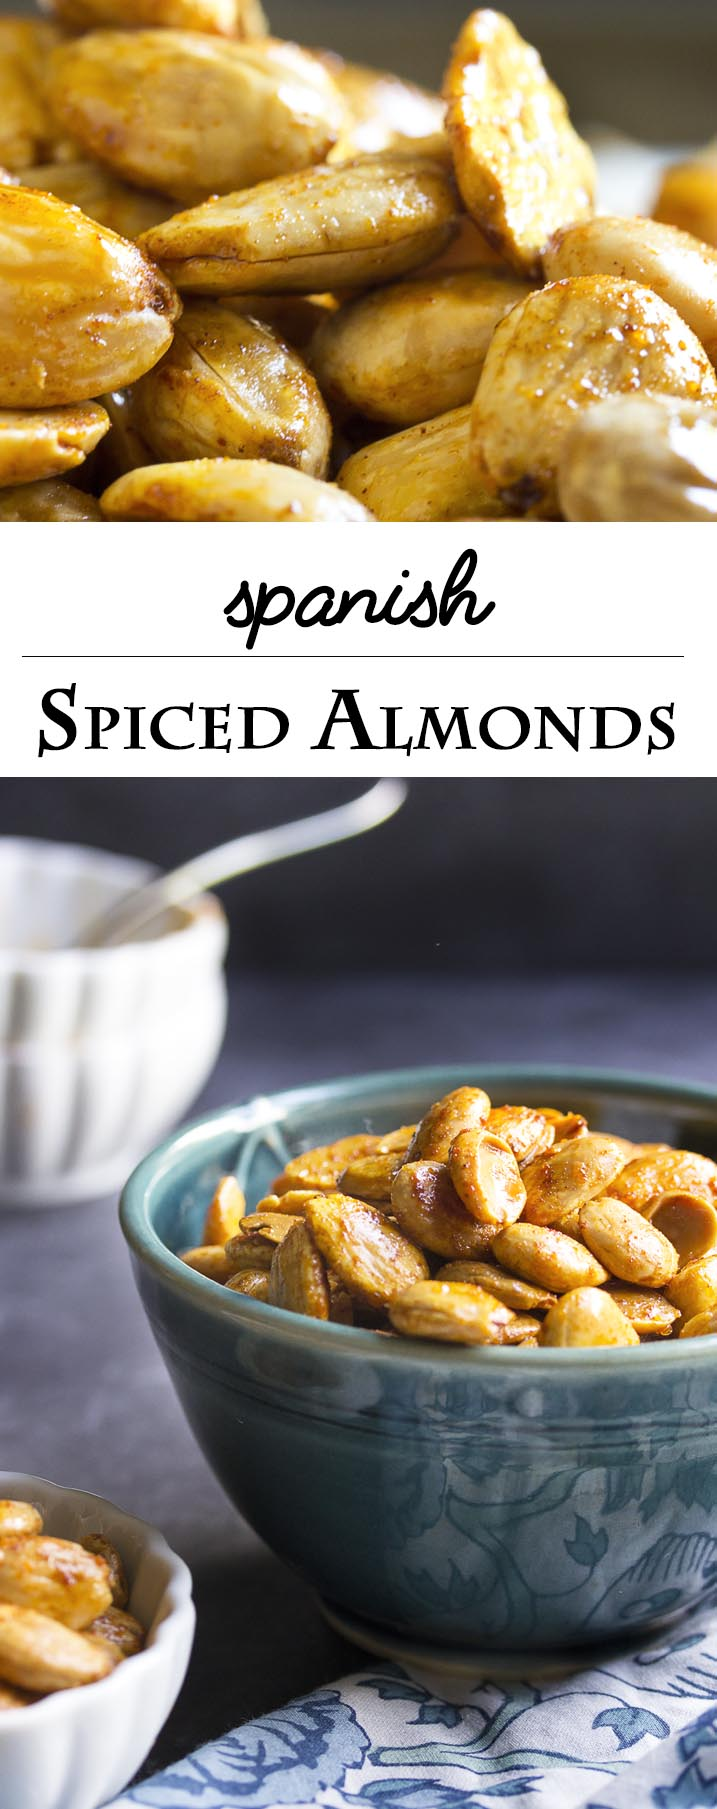 Spanish Spiced Almonds - Creamy, sweet marcona almonds are toasted and tossed in a flavorful paprika-spiked spice blend in this recipe for Spanish spiced almonds. | justalittlebitofbacon.com